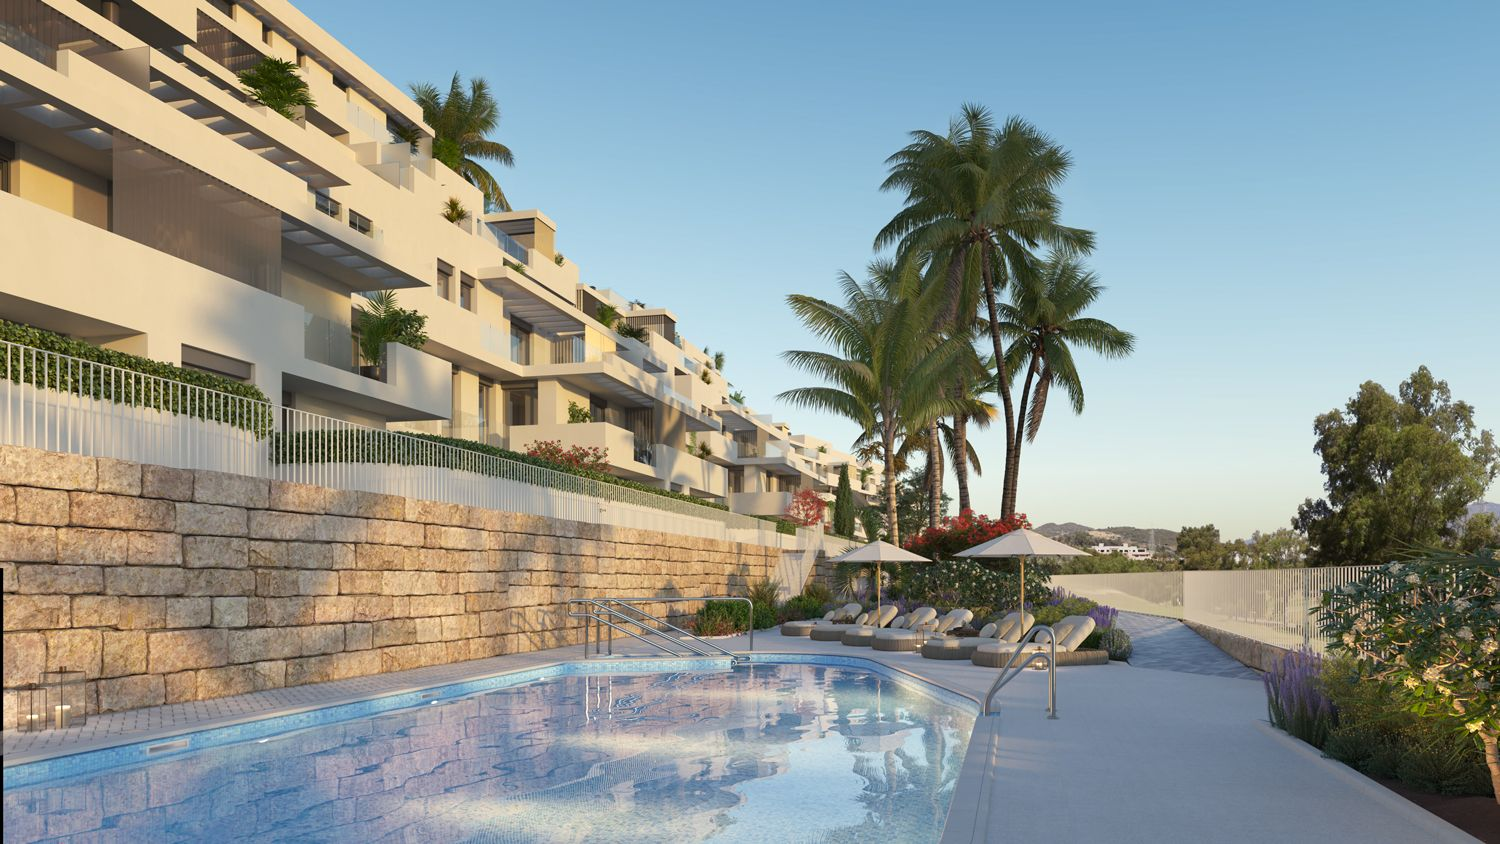 Apartments with views over golf courses in Estepona 3